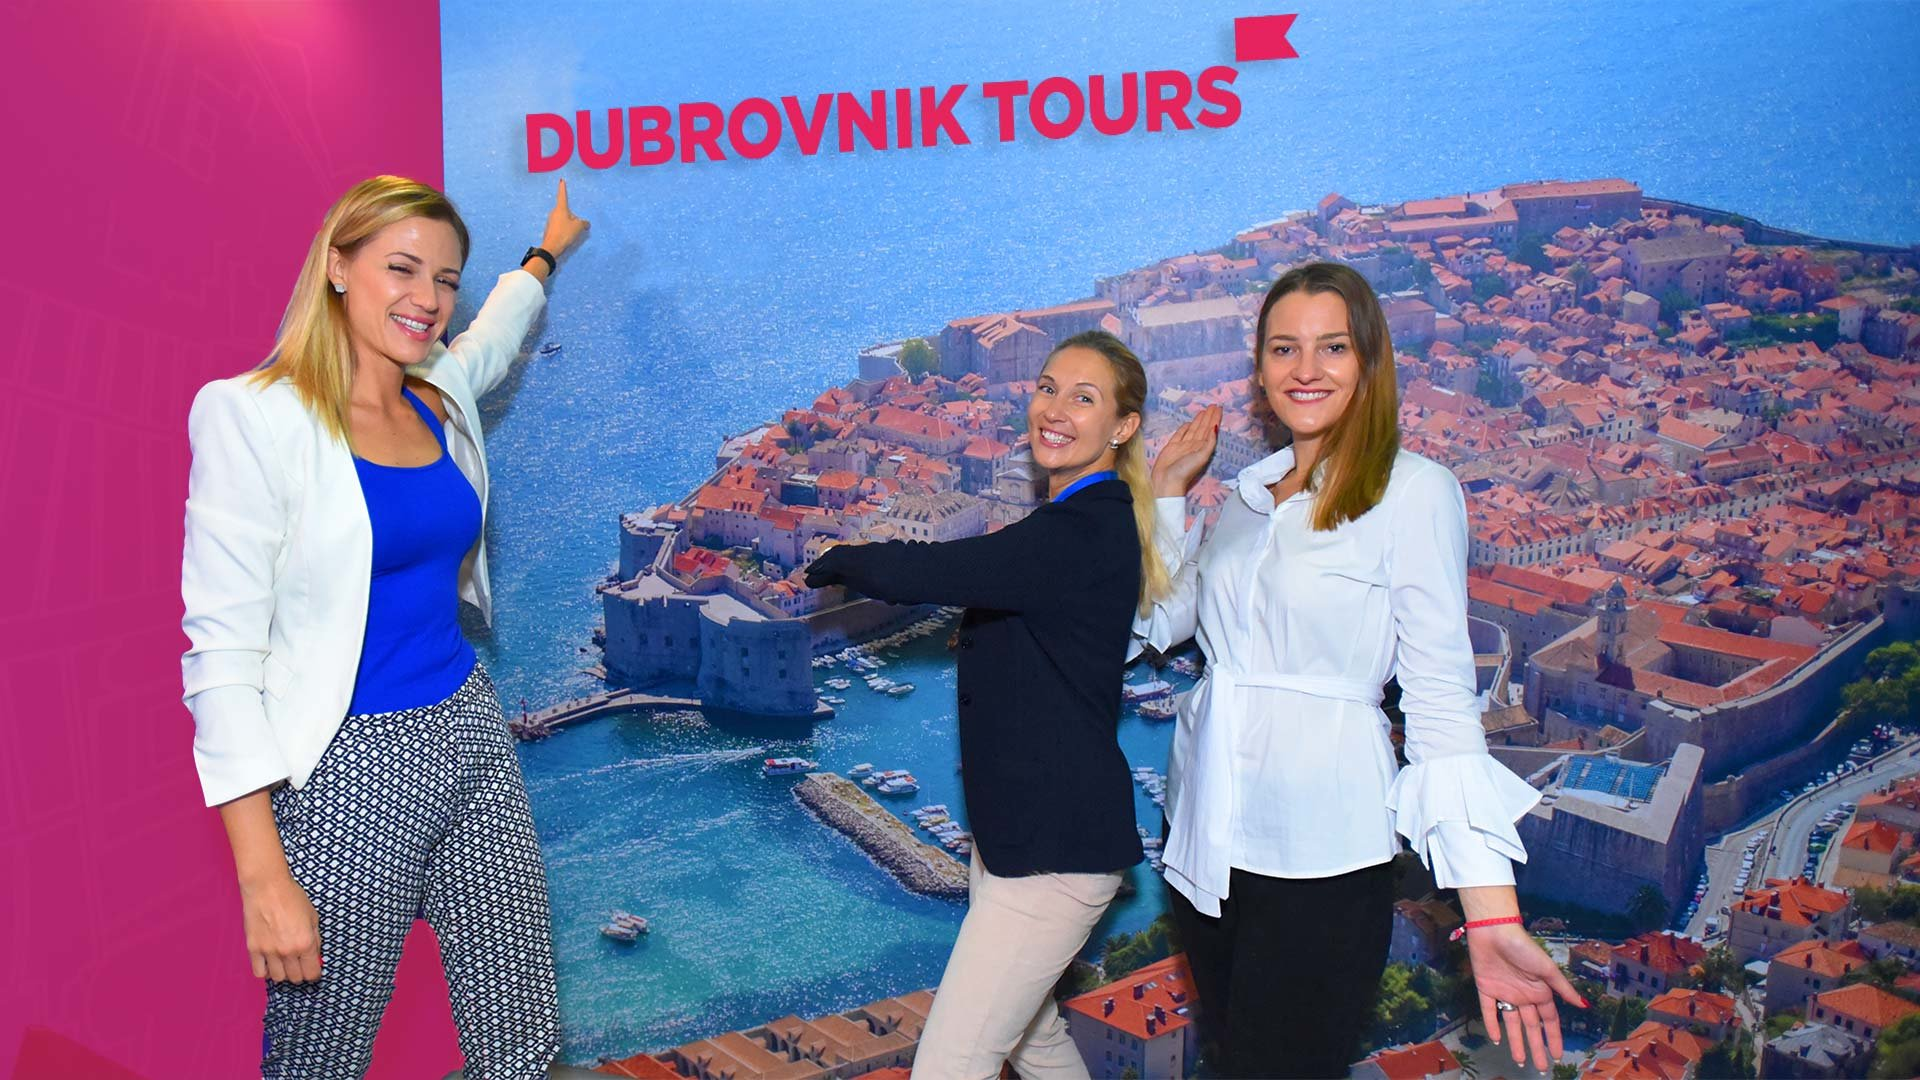 Dubrovnik Tours Contact us